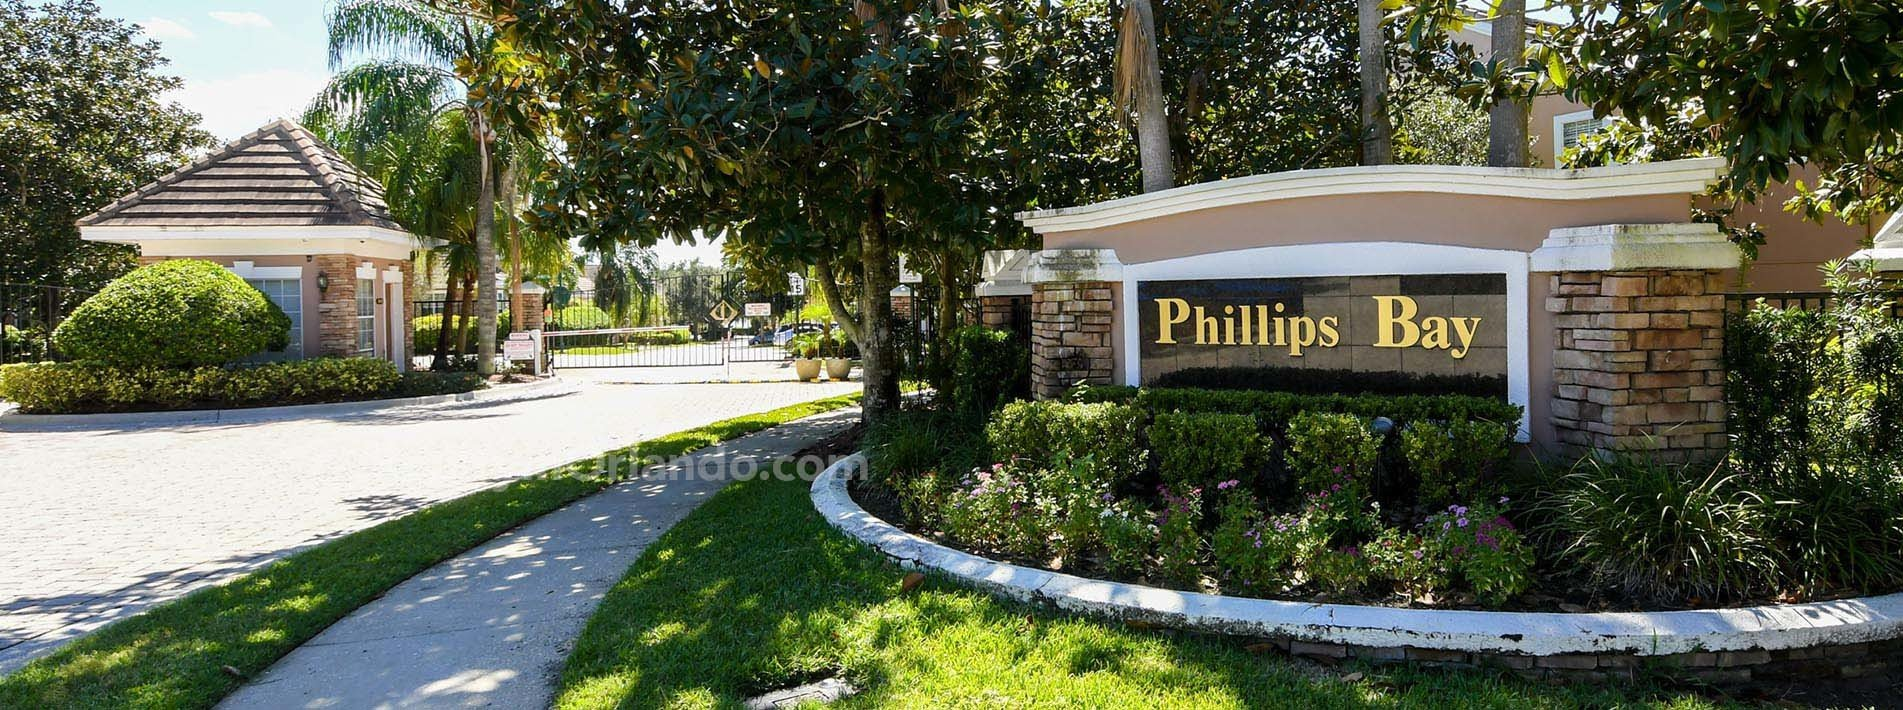 Phillips Bay Orlando